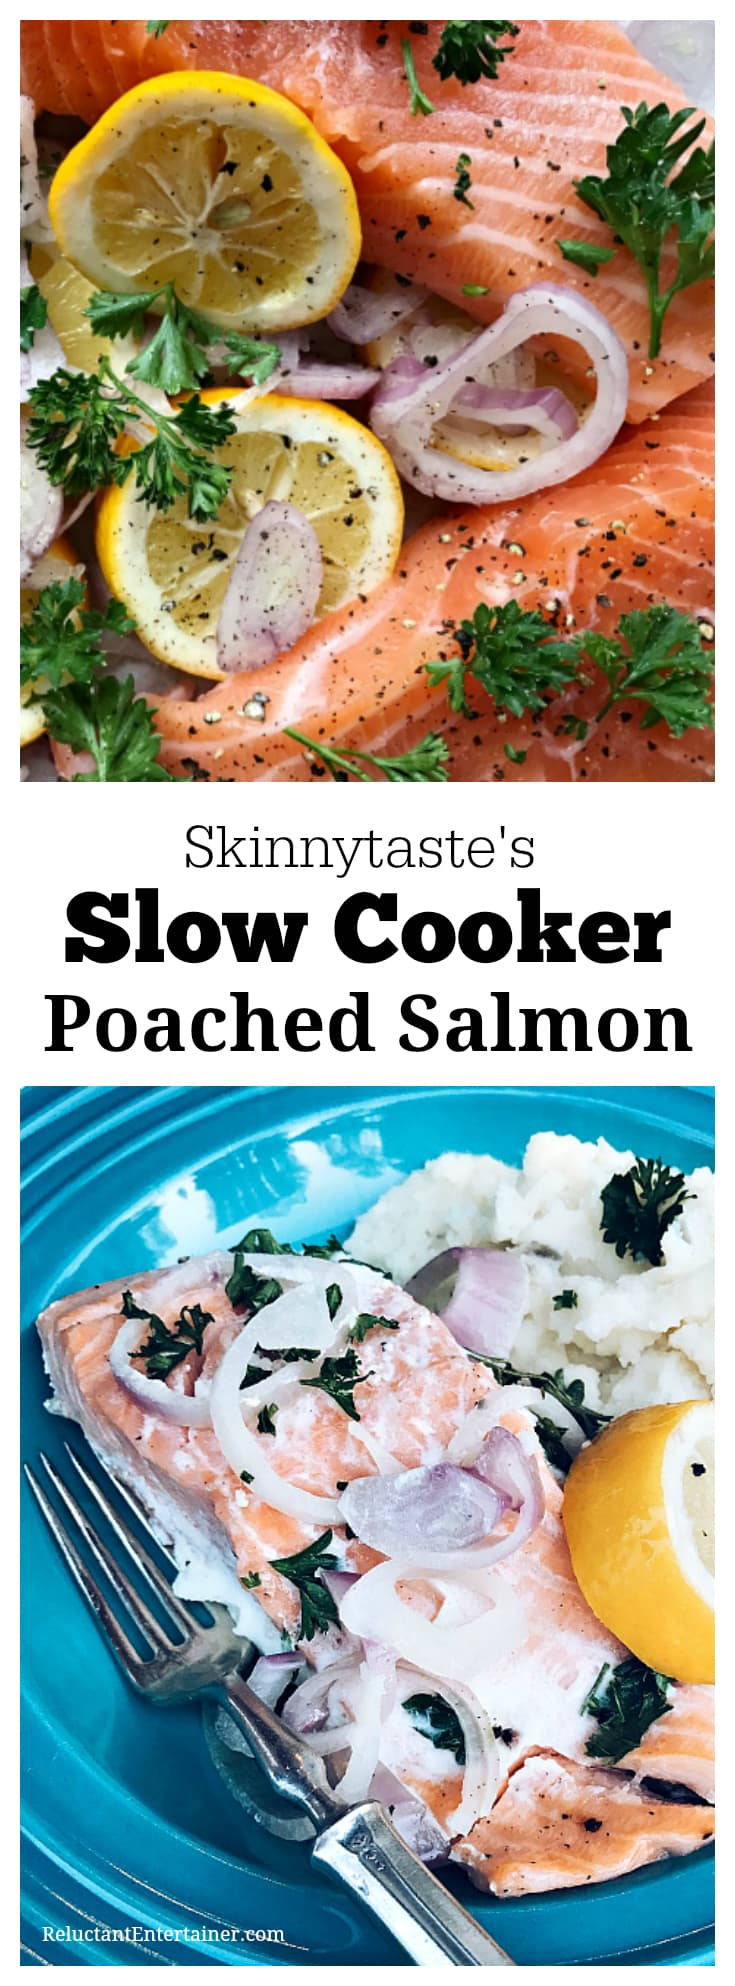 Skinnytaste's Slow Cooker Poached Salmon